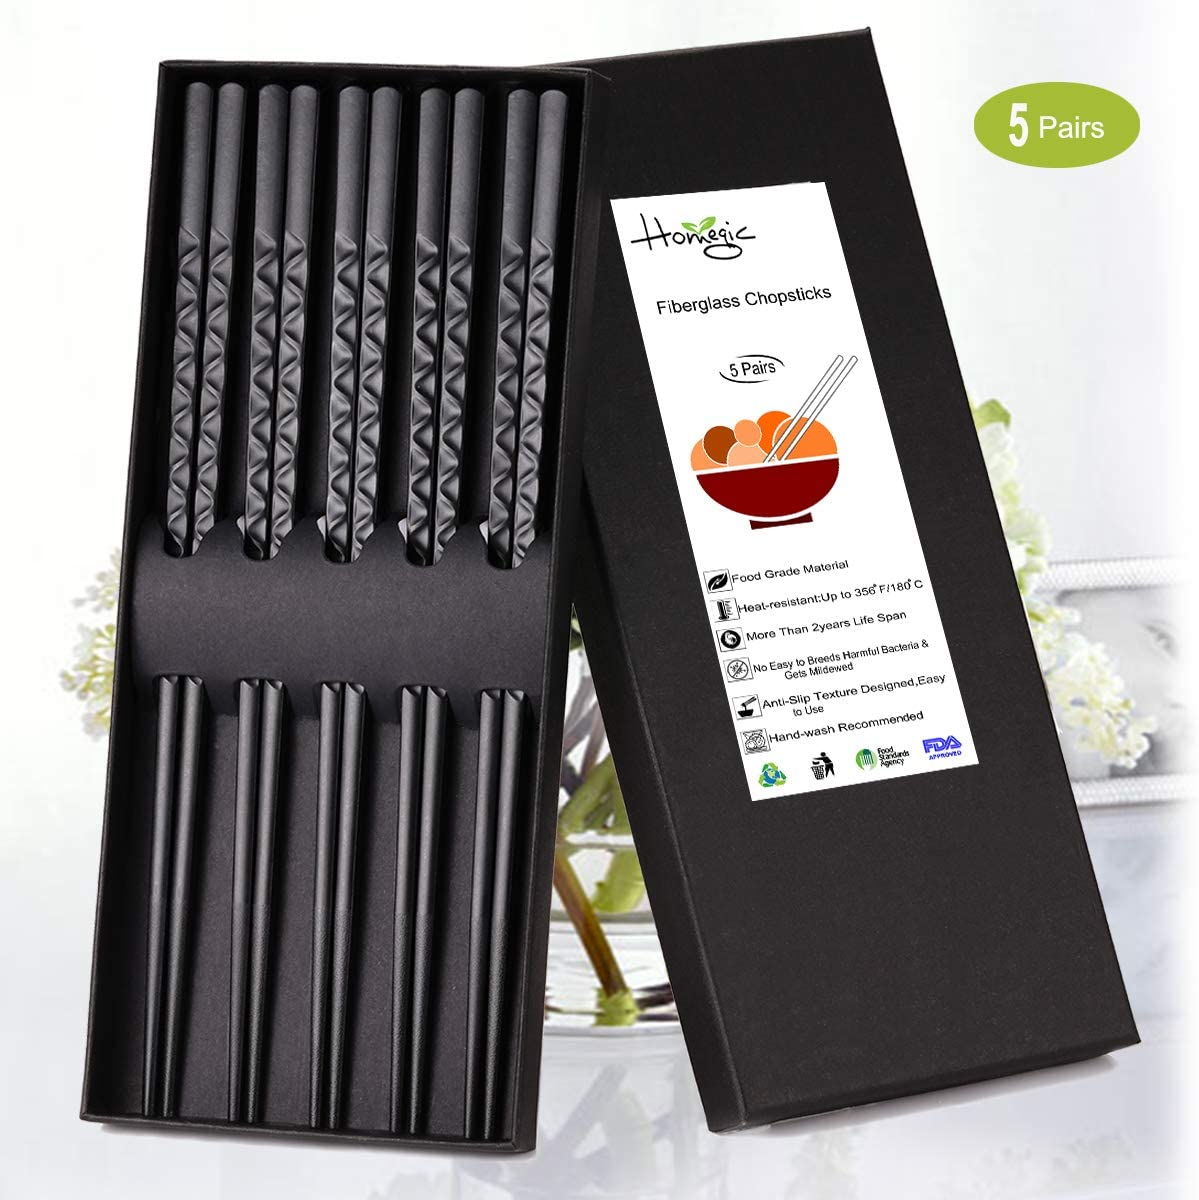 Chopsticks Reusable 5-Pairs Chop Sticks Anti-Slip Textured Tip Reusable Chopsticks Dishwasher Safe Fiberglass Chopsticks Set with Box for Household Restaurant- Black 9-1/2 Inch (Meandering)